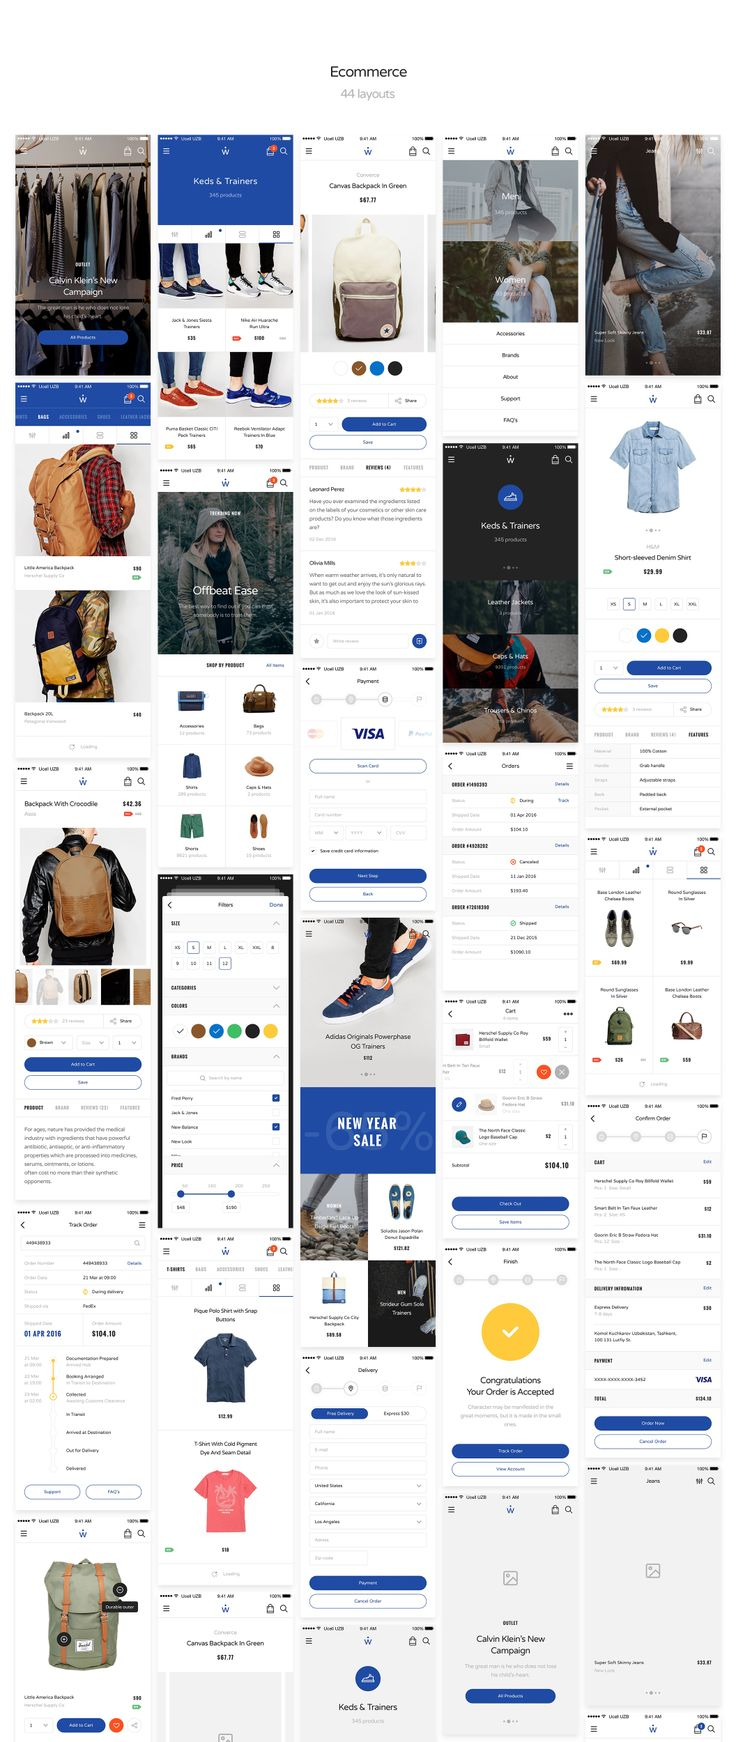 290+ Layouts for UI Design & UX Prototyping